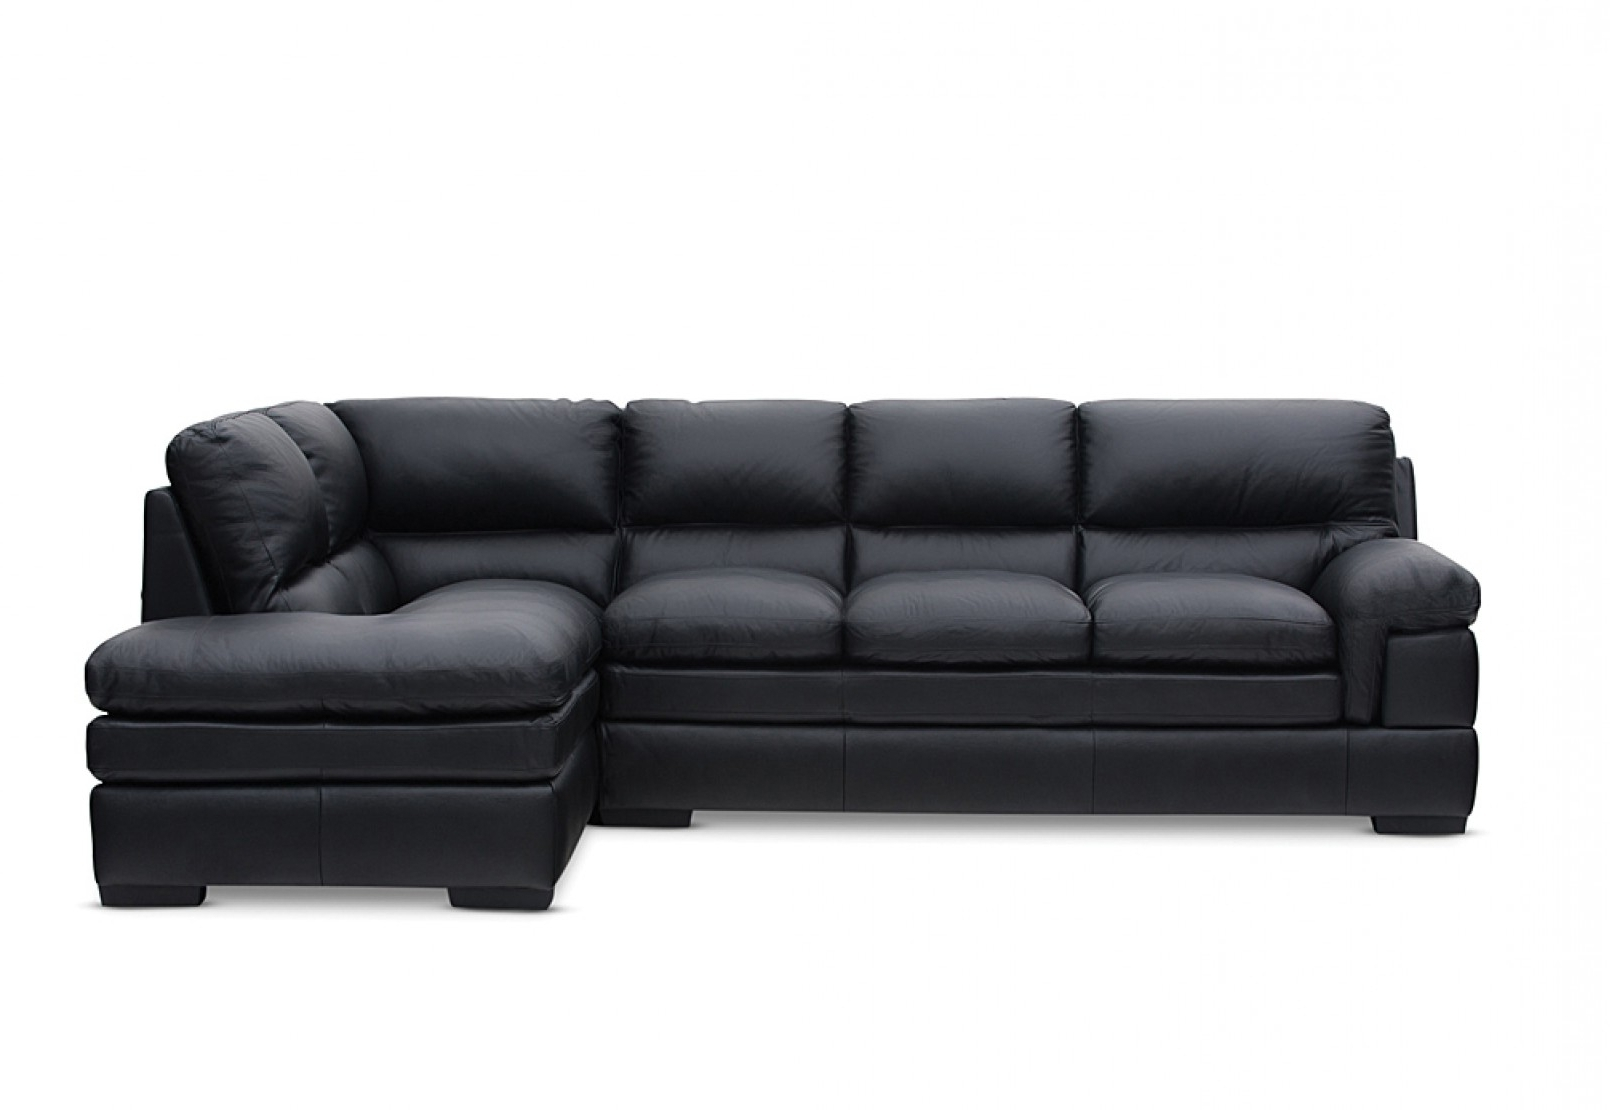 Preferred Corner Chaise Lounges With 6 Day Offers – Lounges & Sofas (View 12 of 15)